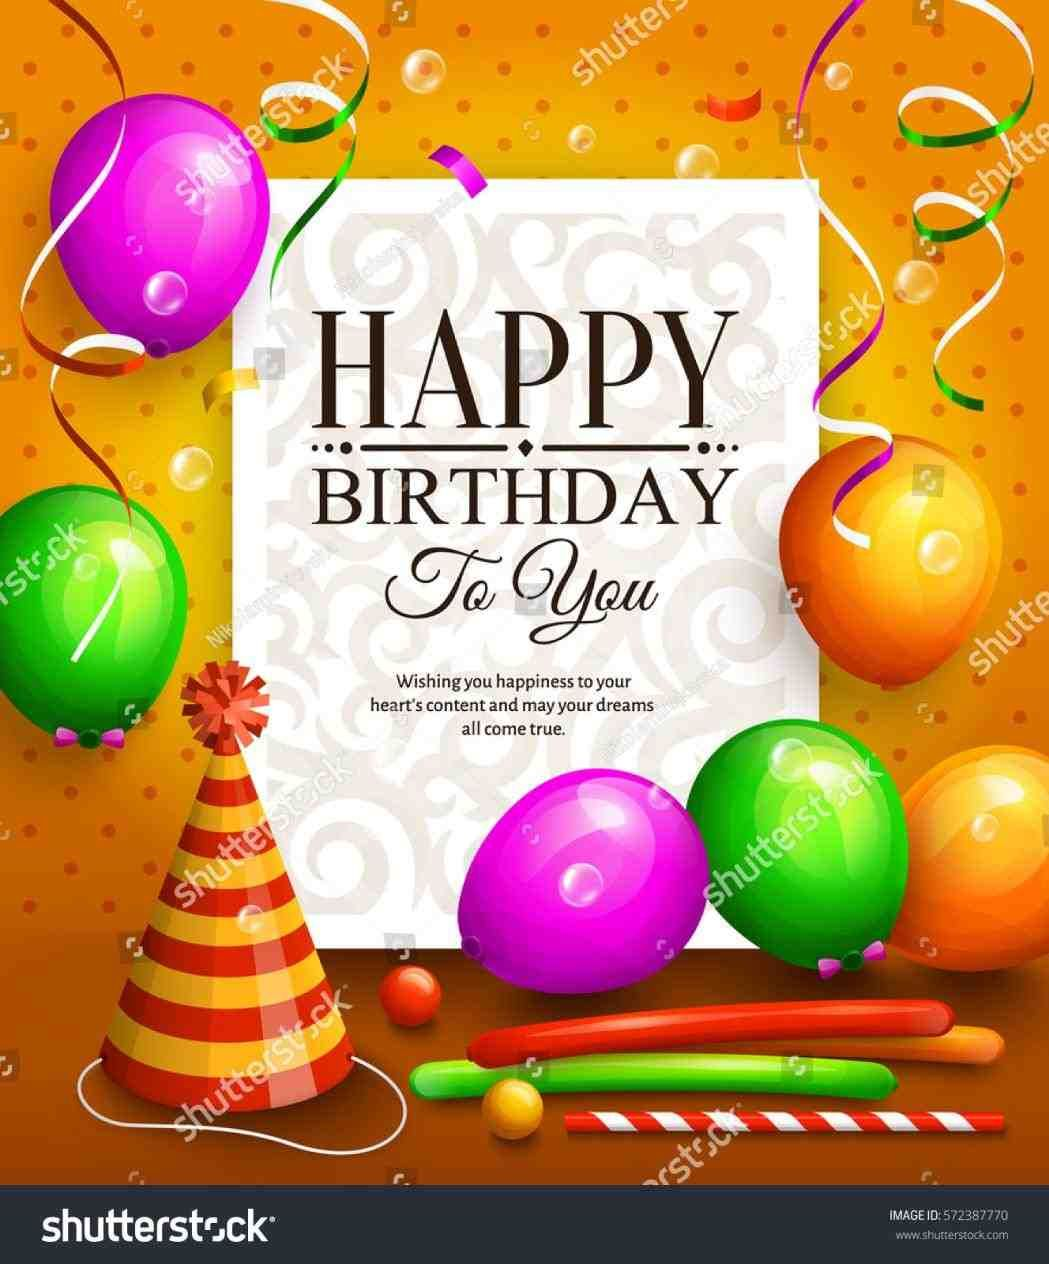 happy birthday wallpapers free download birthday wishes for brother